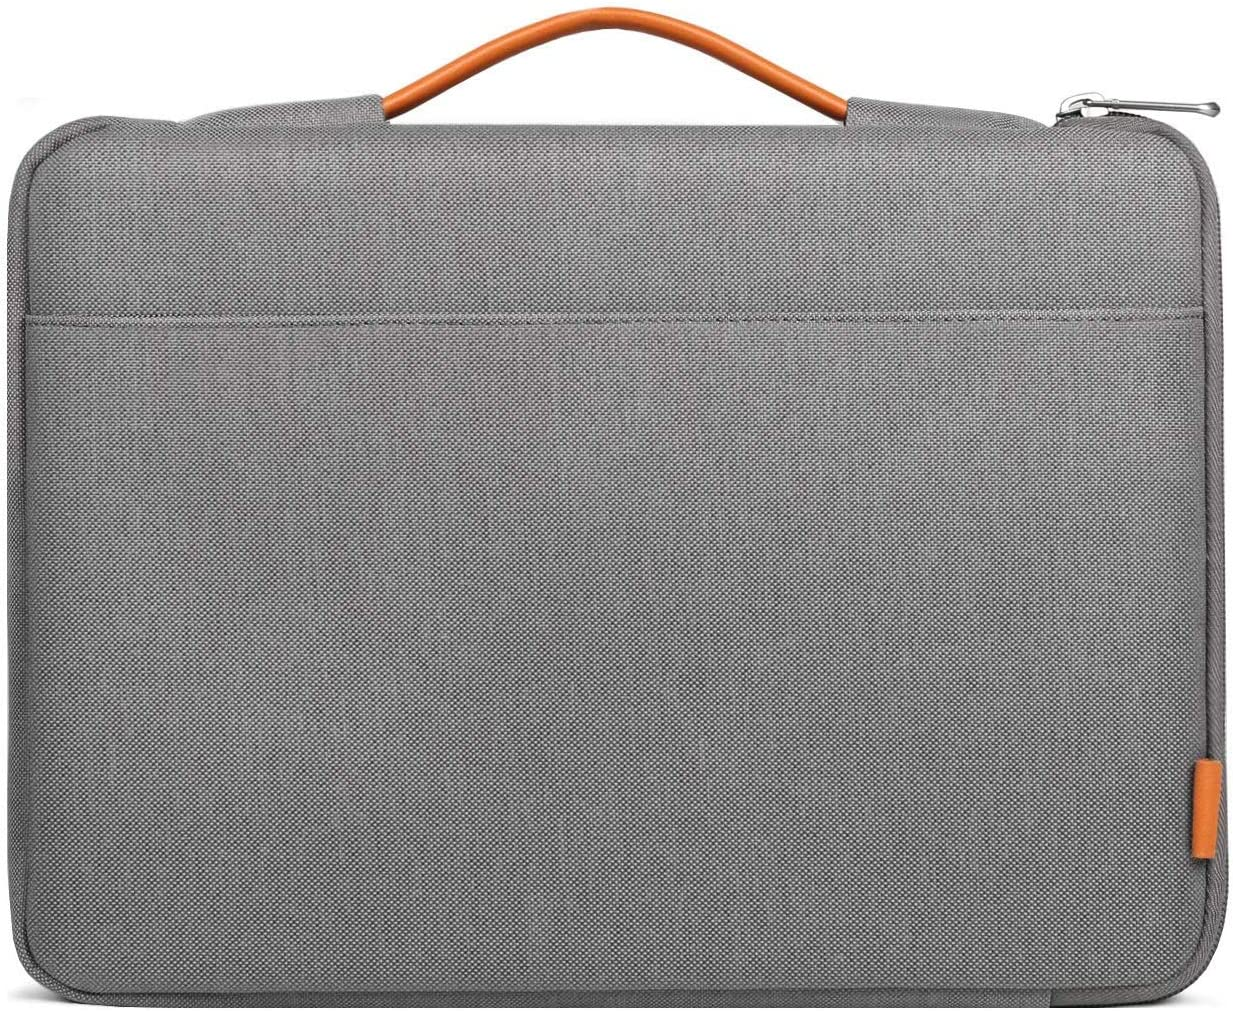 Inateck Funda Compatible MacBook Air 2020-2012/13 MacBook Pro 2020-2012, Surface Pro X/7/6/5/4, iPad Pro 12.9, 13.5 Surface Laptop/ 13.5 Surface Book